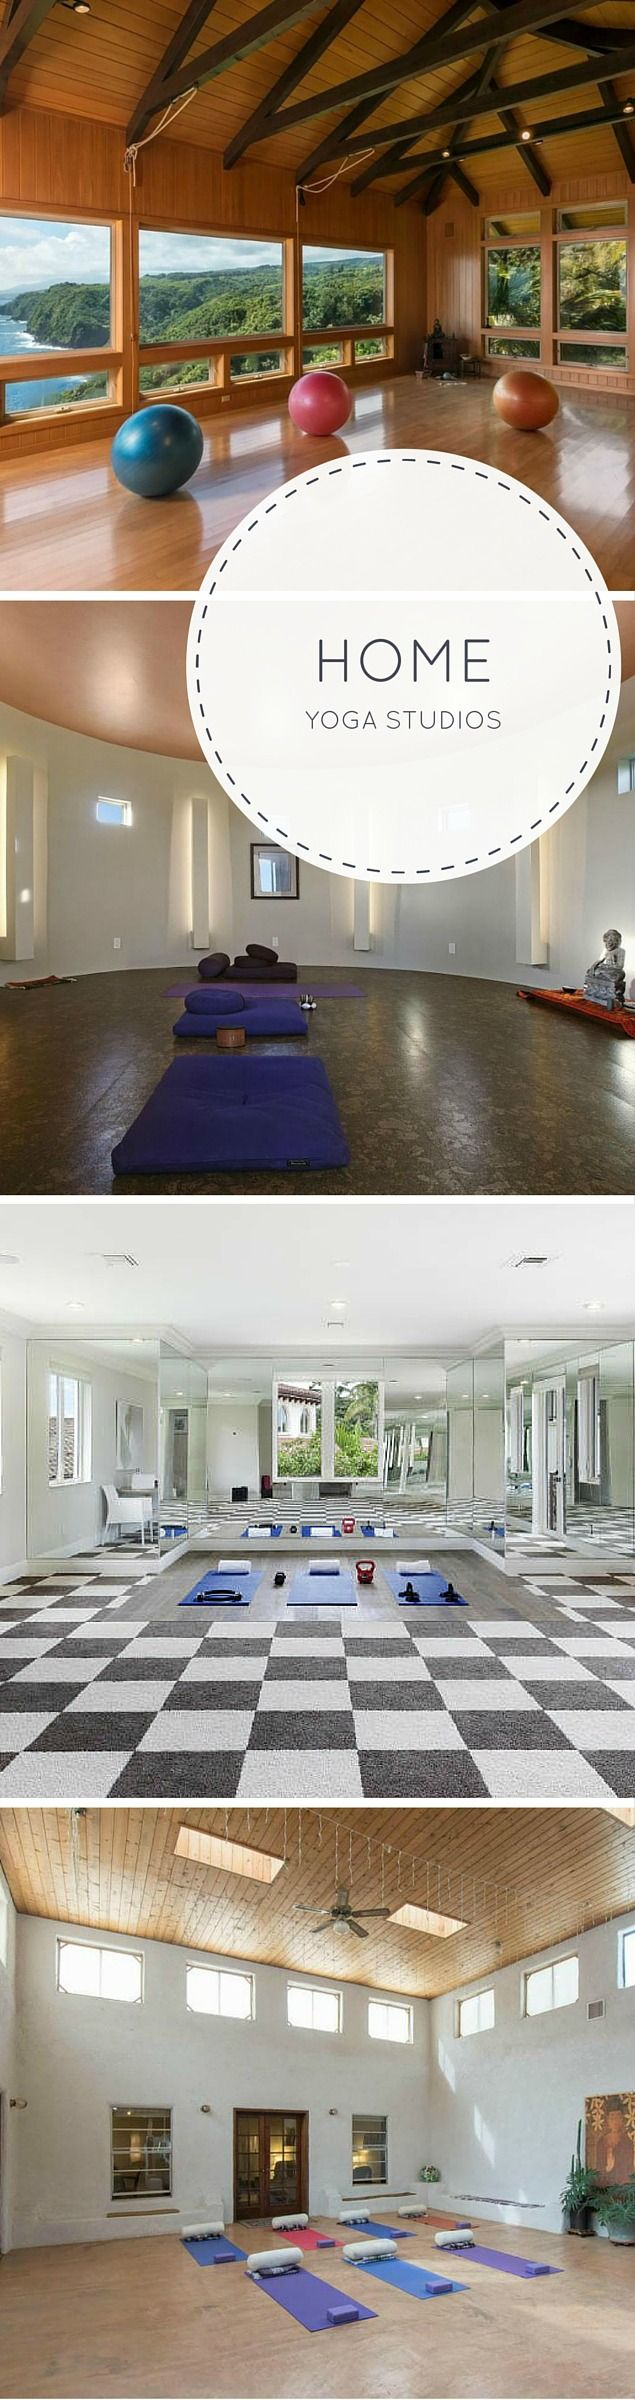 See 6 amazing, peaceful at-home yoga studios that could inspire anyone to get started on their first downward dog. Find your zen in these rooms dedicated to the ancient art of yoga.